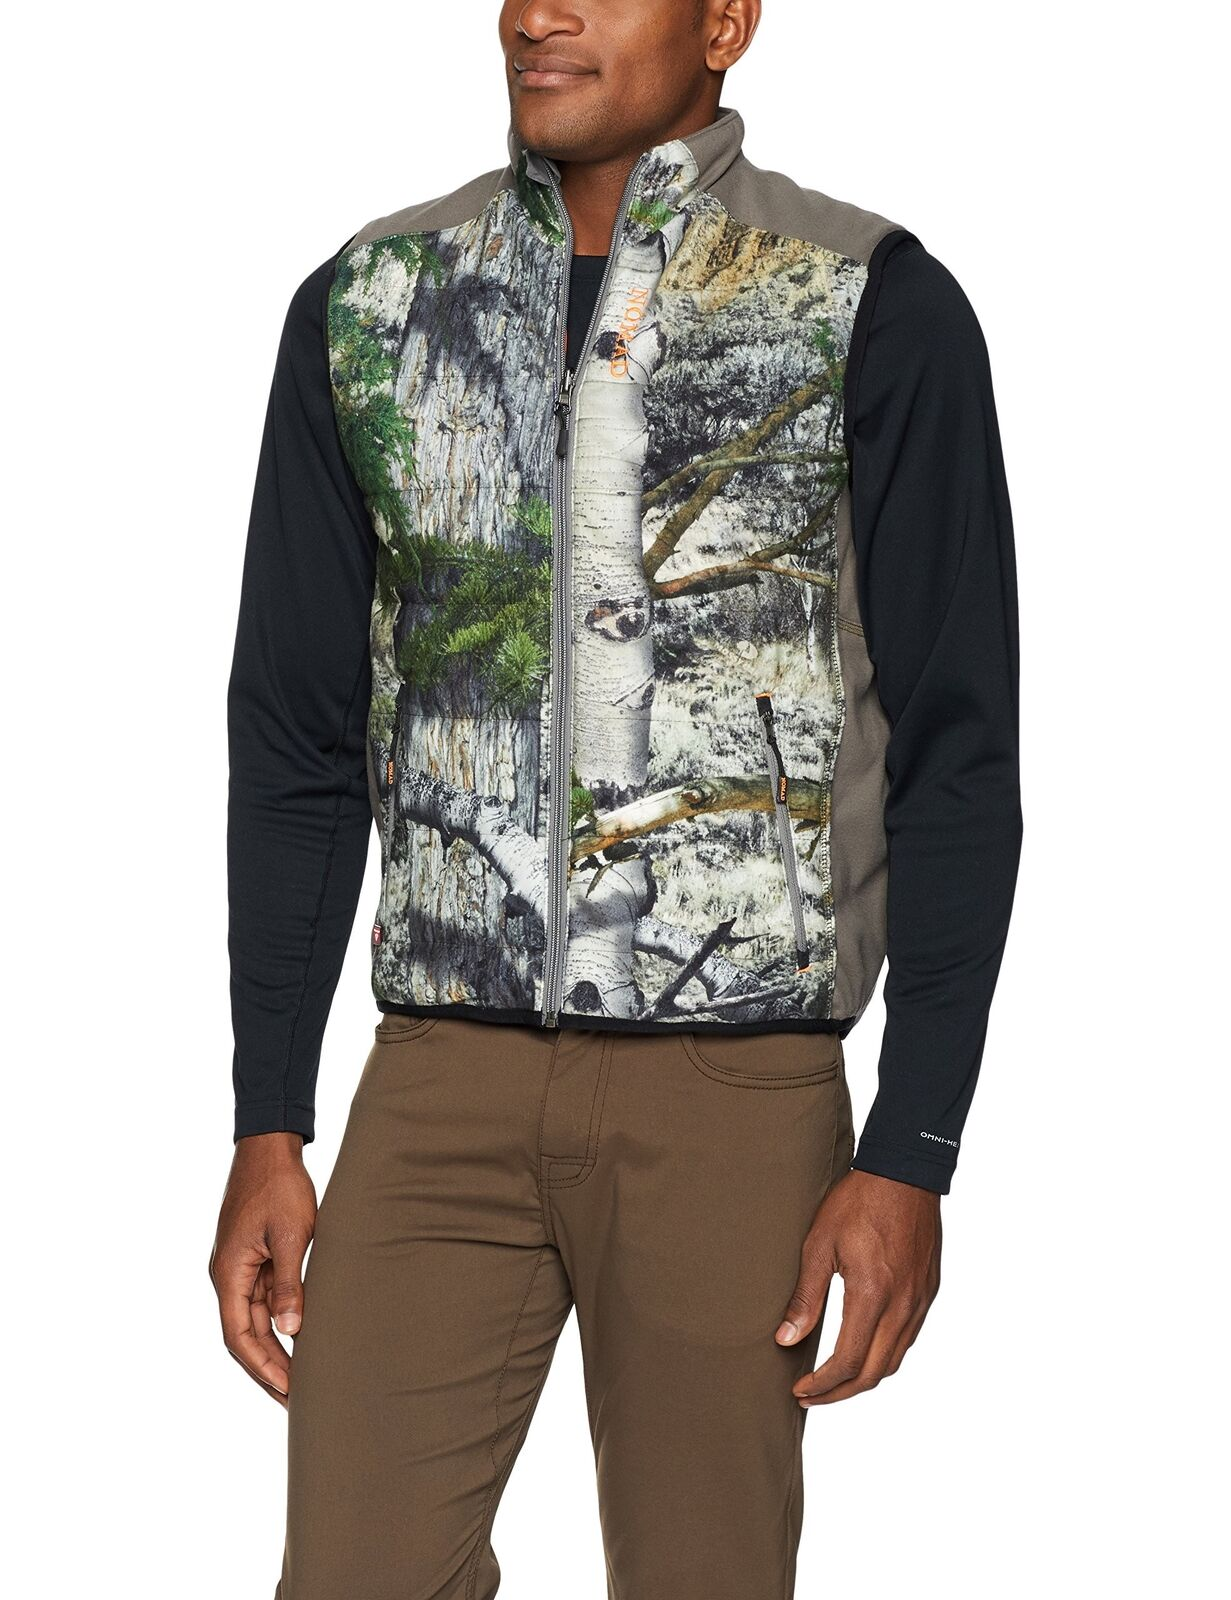 Nomad Outdoor Men's Dunn Primaloft Vest, Mossy Oak Mountain Country, Large